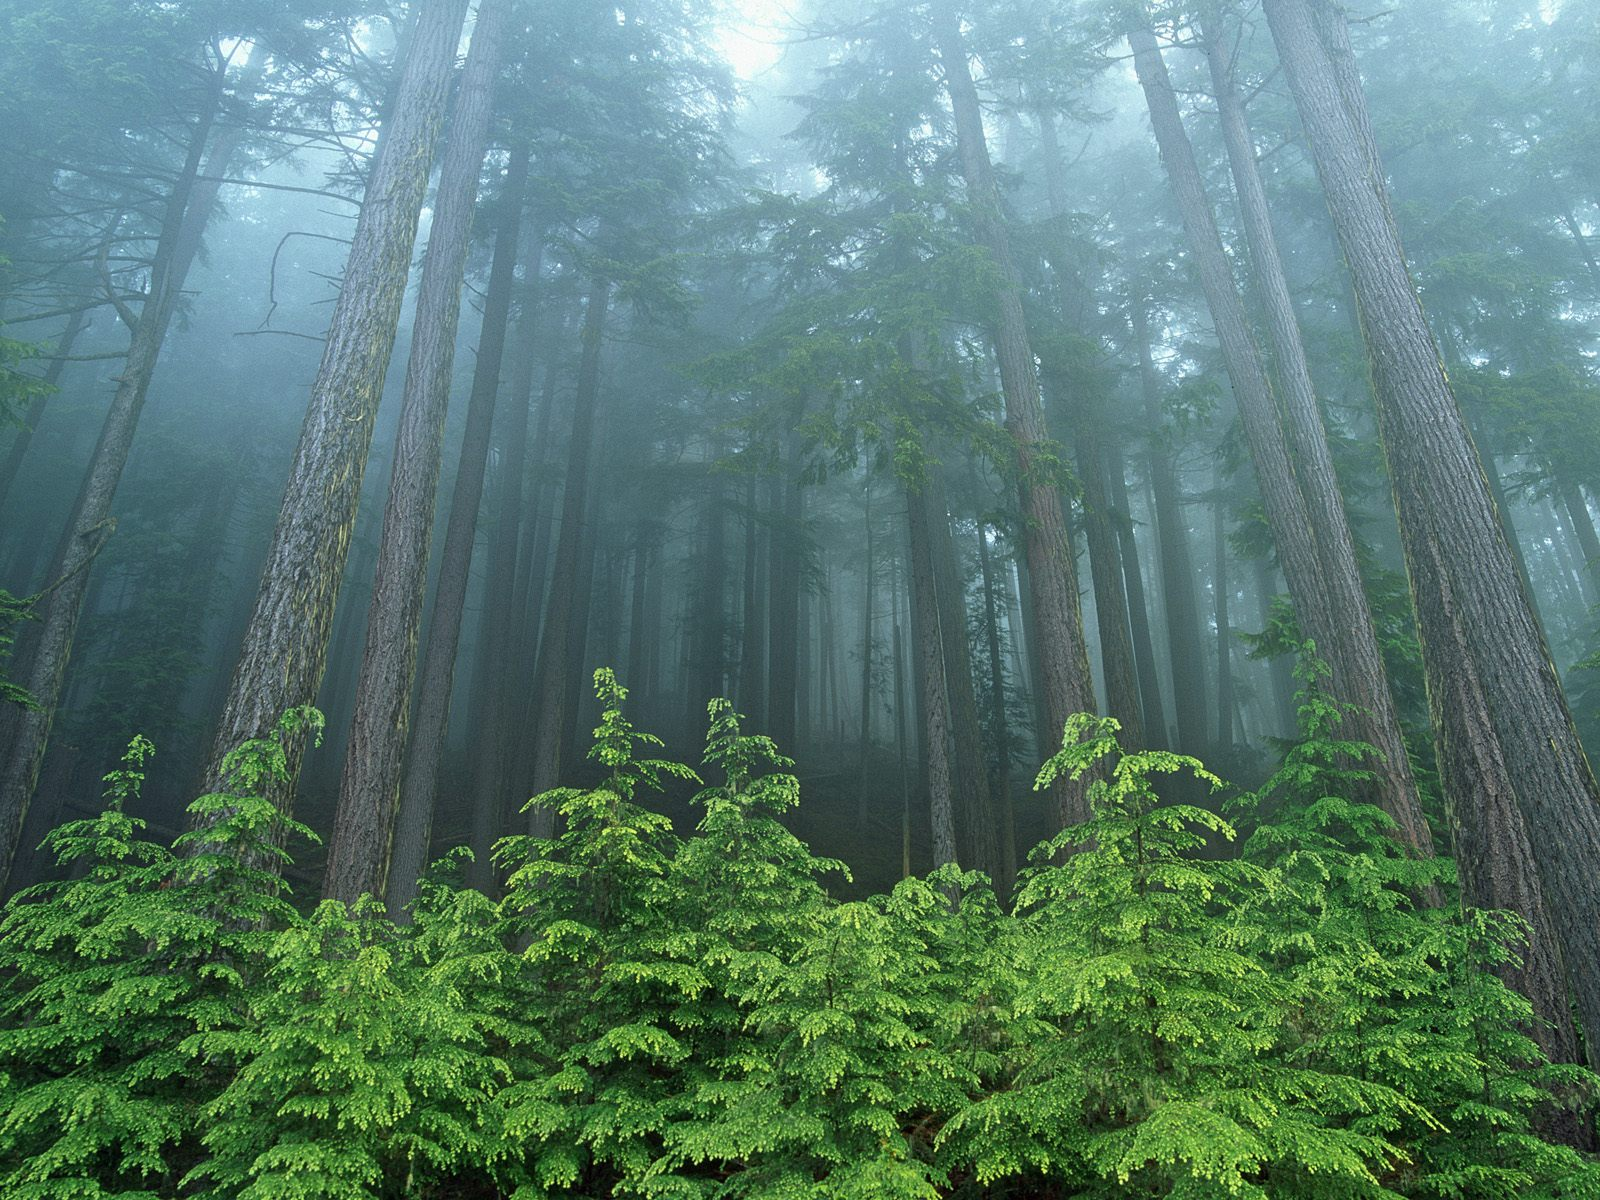 Trees Woodland And Forests Evergreen Forest Olympic National Park Washington